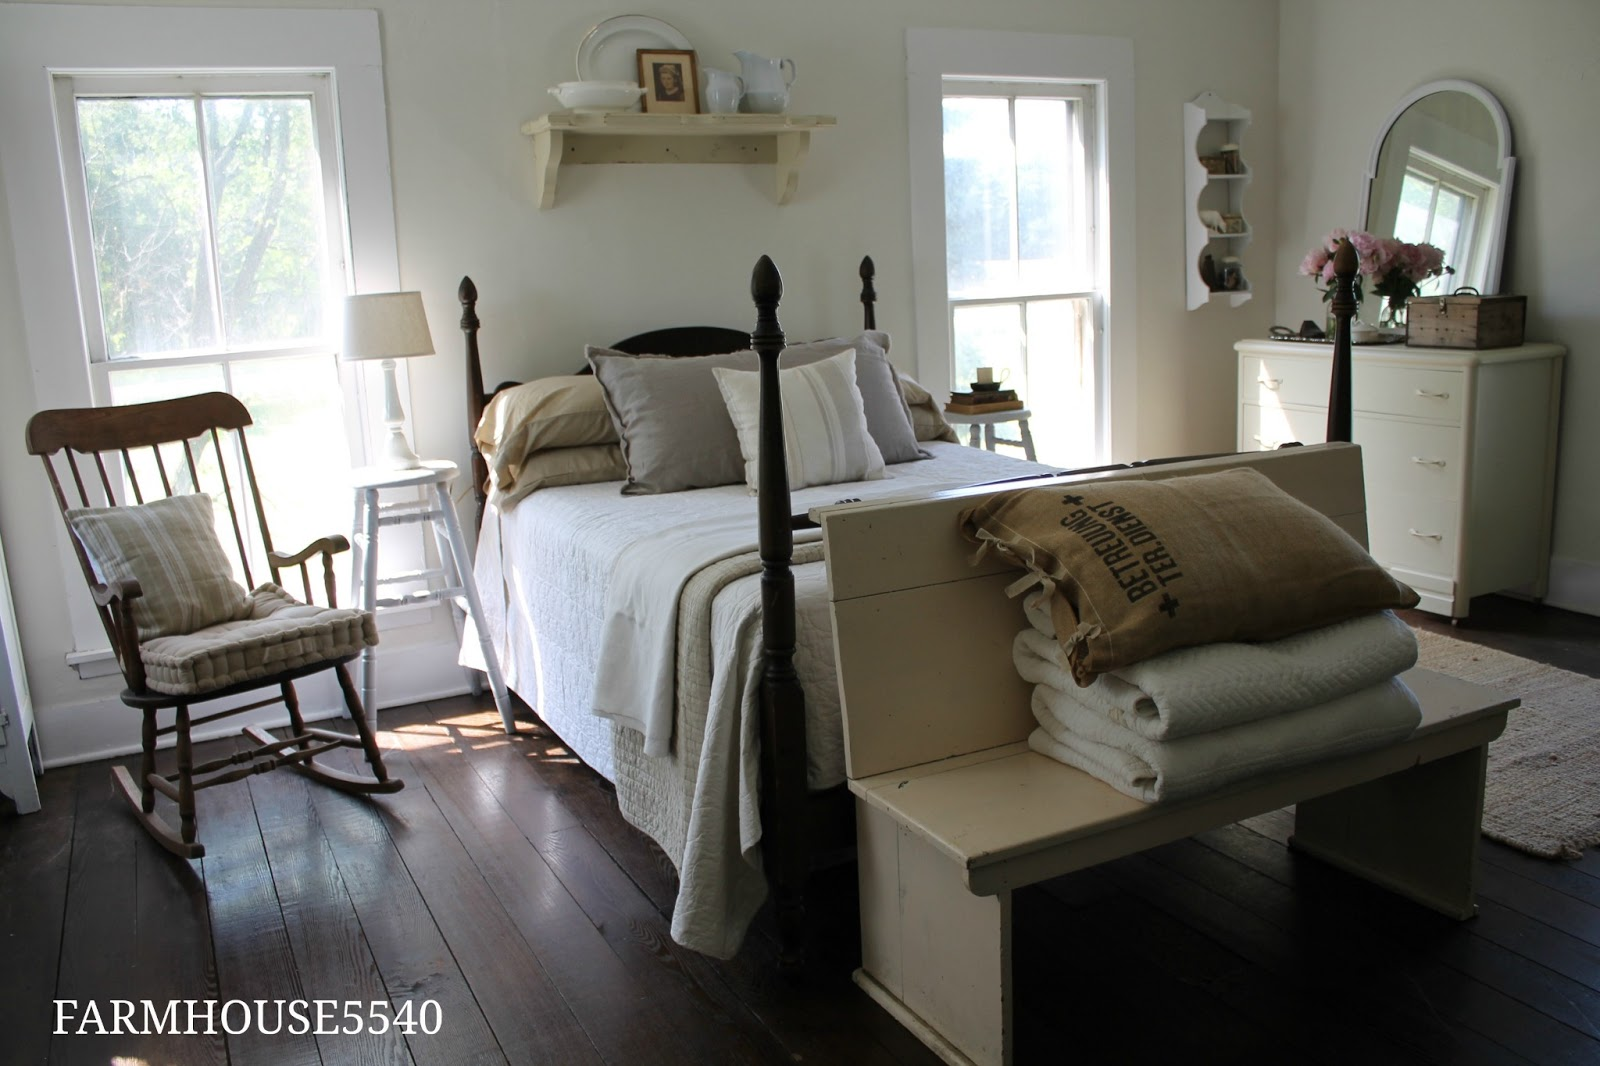 Vintage Farmhouse Bedroom Images Farmhouse 5540 Guest Bedroom Reveal